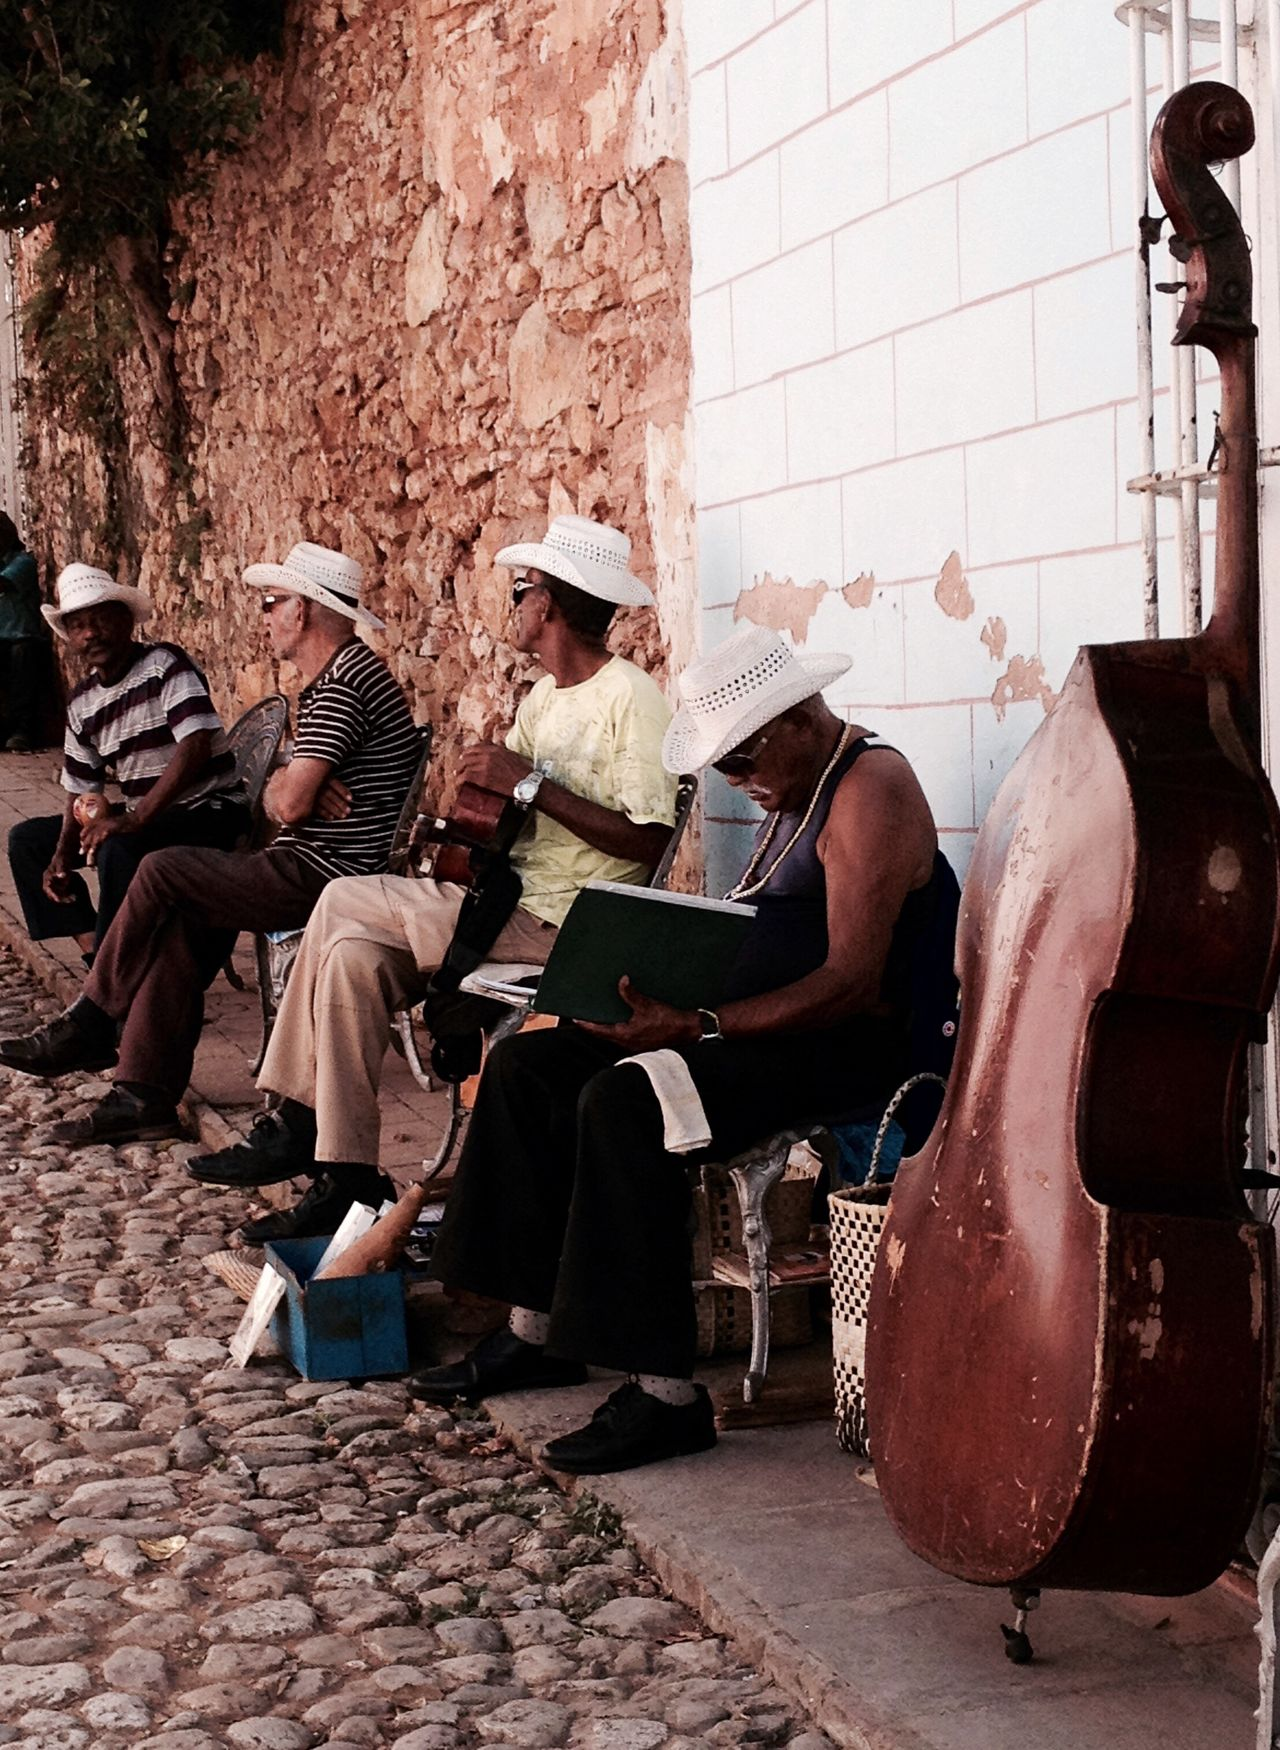 Music Fun Musician Musical Instrument Performance Group Making Music Cuba Cuban Life Cuban Musicians Trinidad Sound Of Life SOUND AND MUSIC